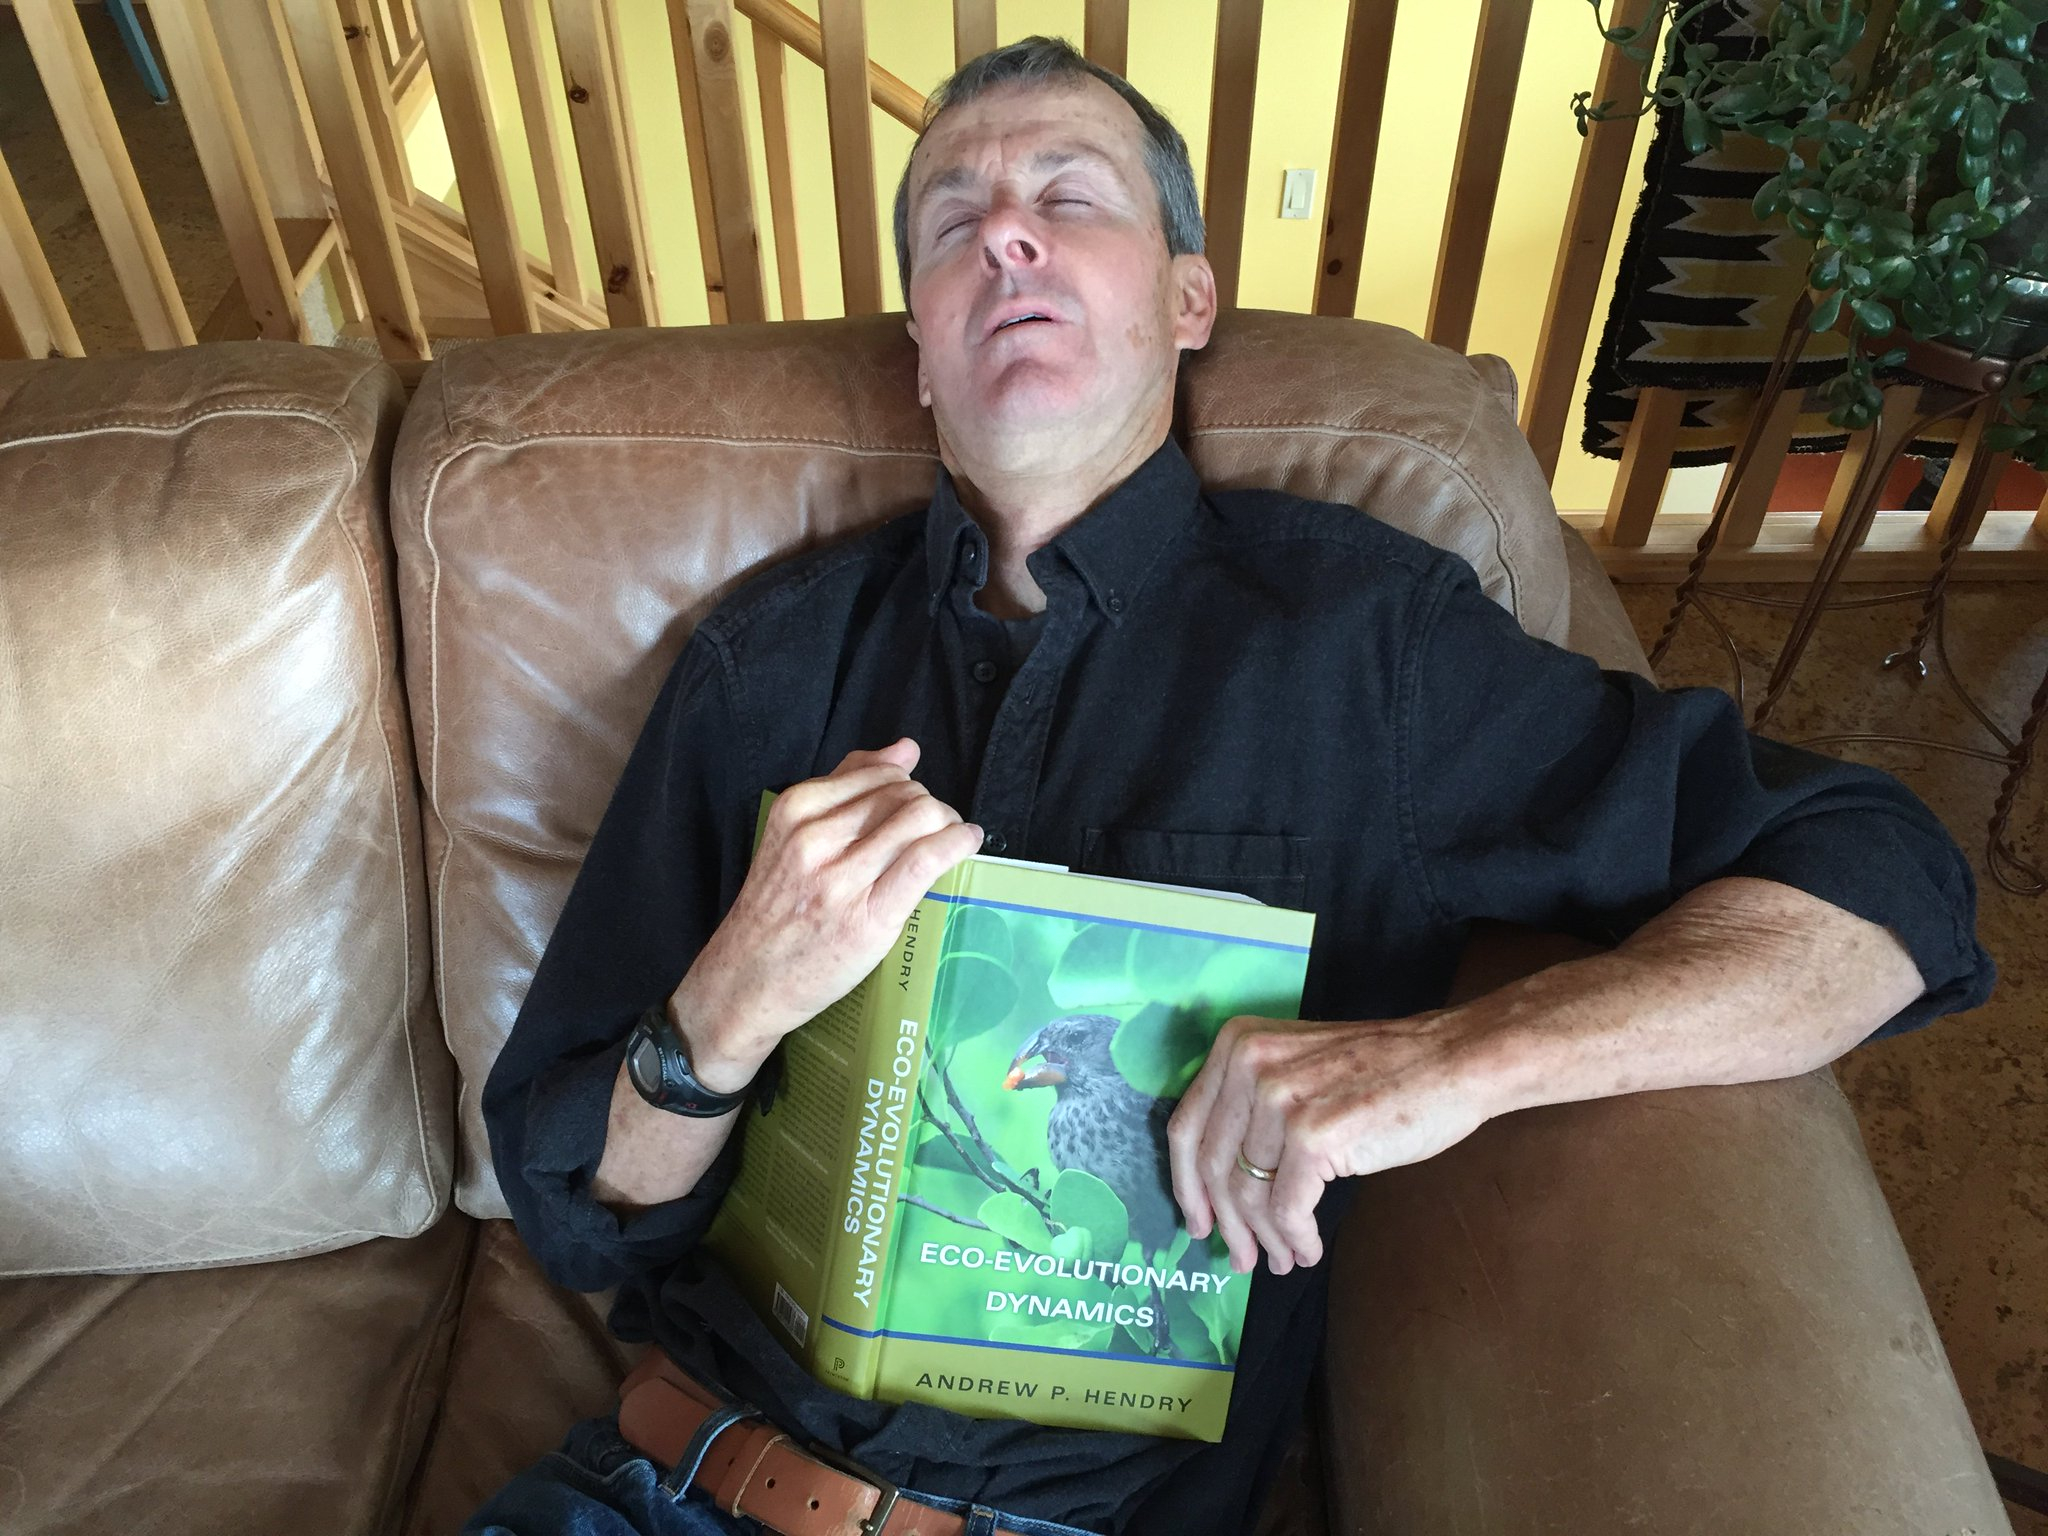 #PeopleWhoFellAsleepReadingMyBook Craig Benkman! He commented on several chapters in draft form, so a little shut-eye now is to be excused. https://t.co/7hAdlcQwhT